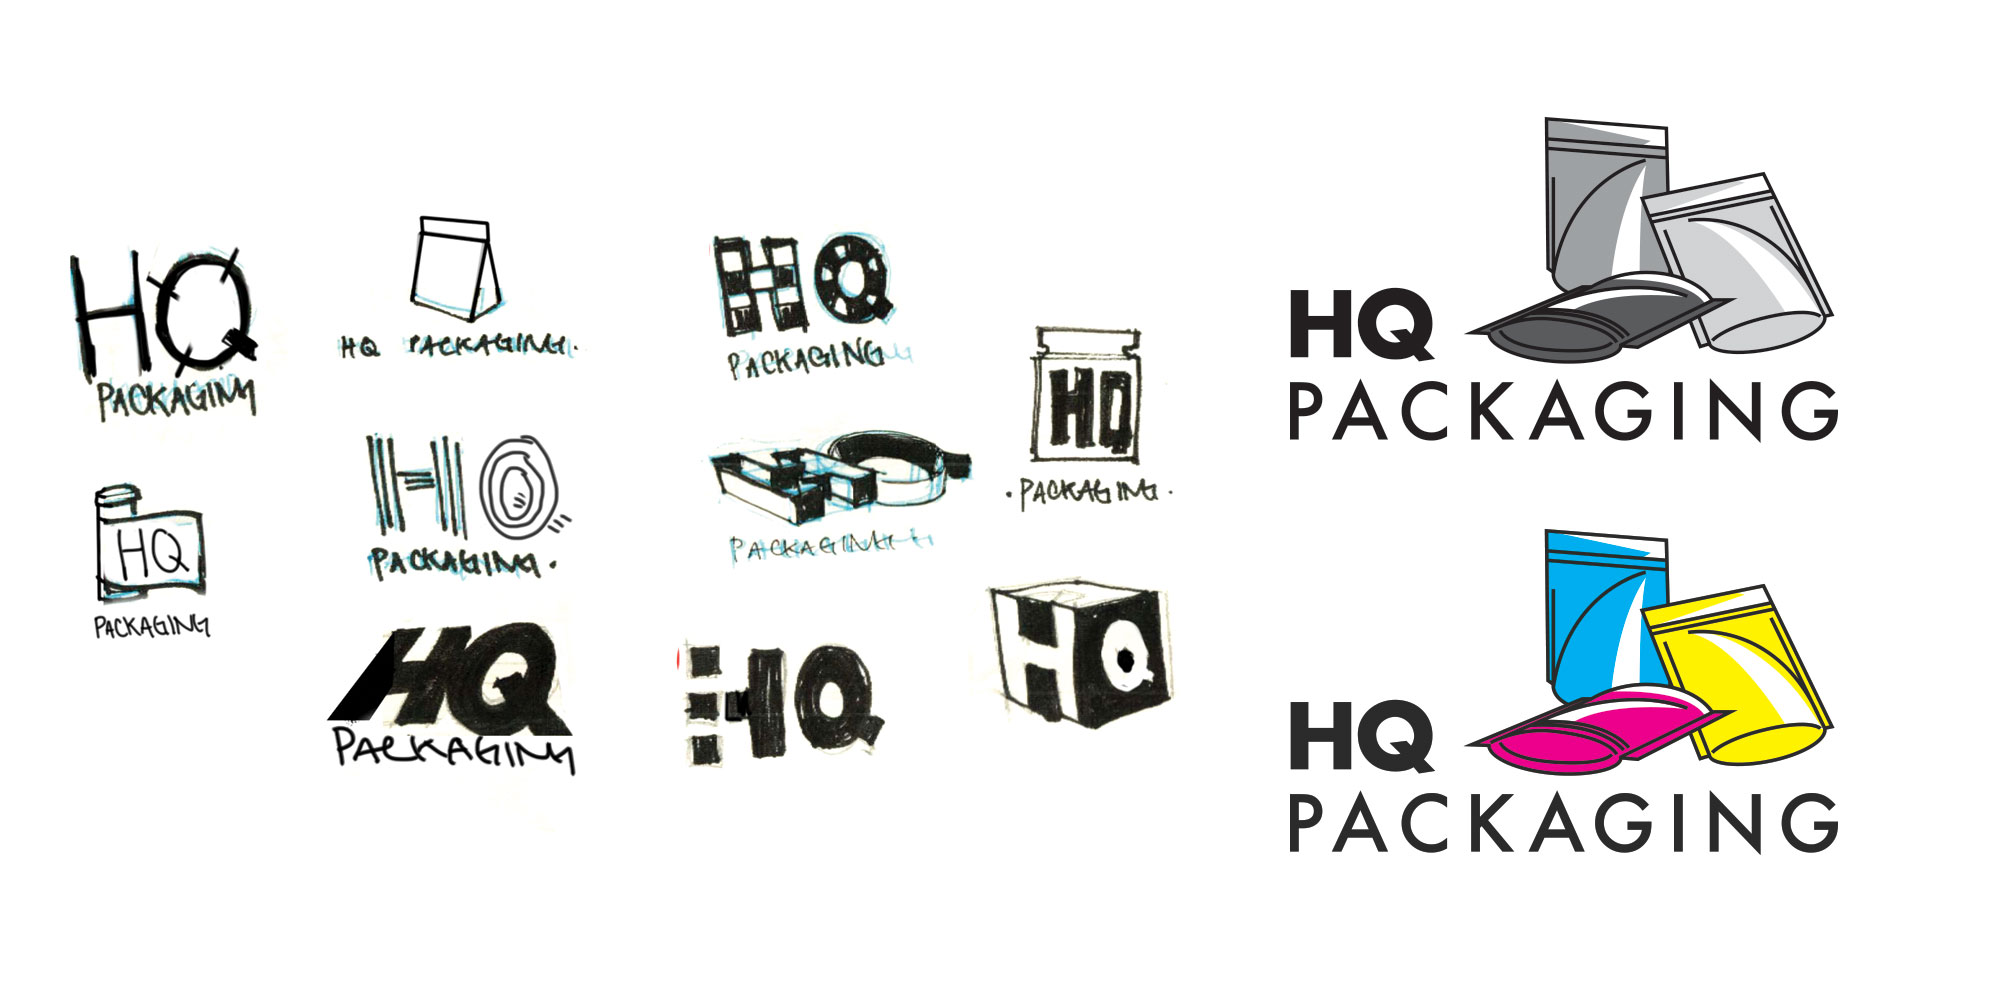 HQ Packaging Logo Design